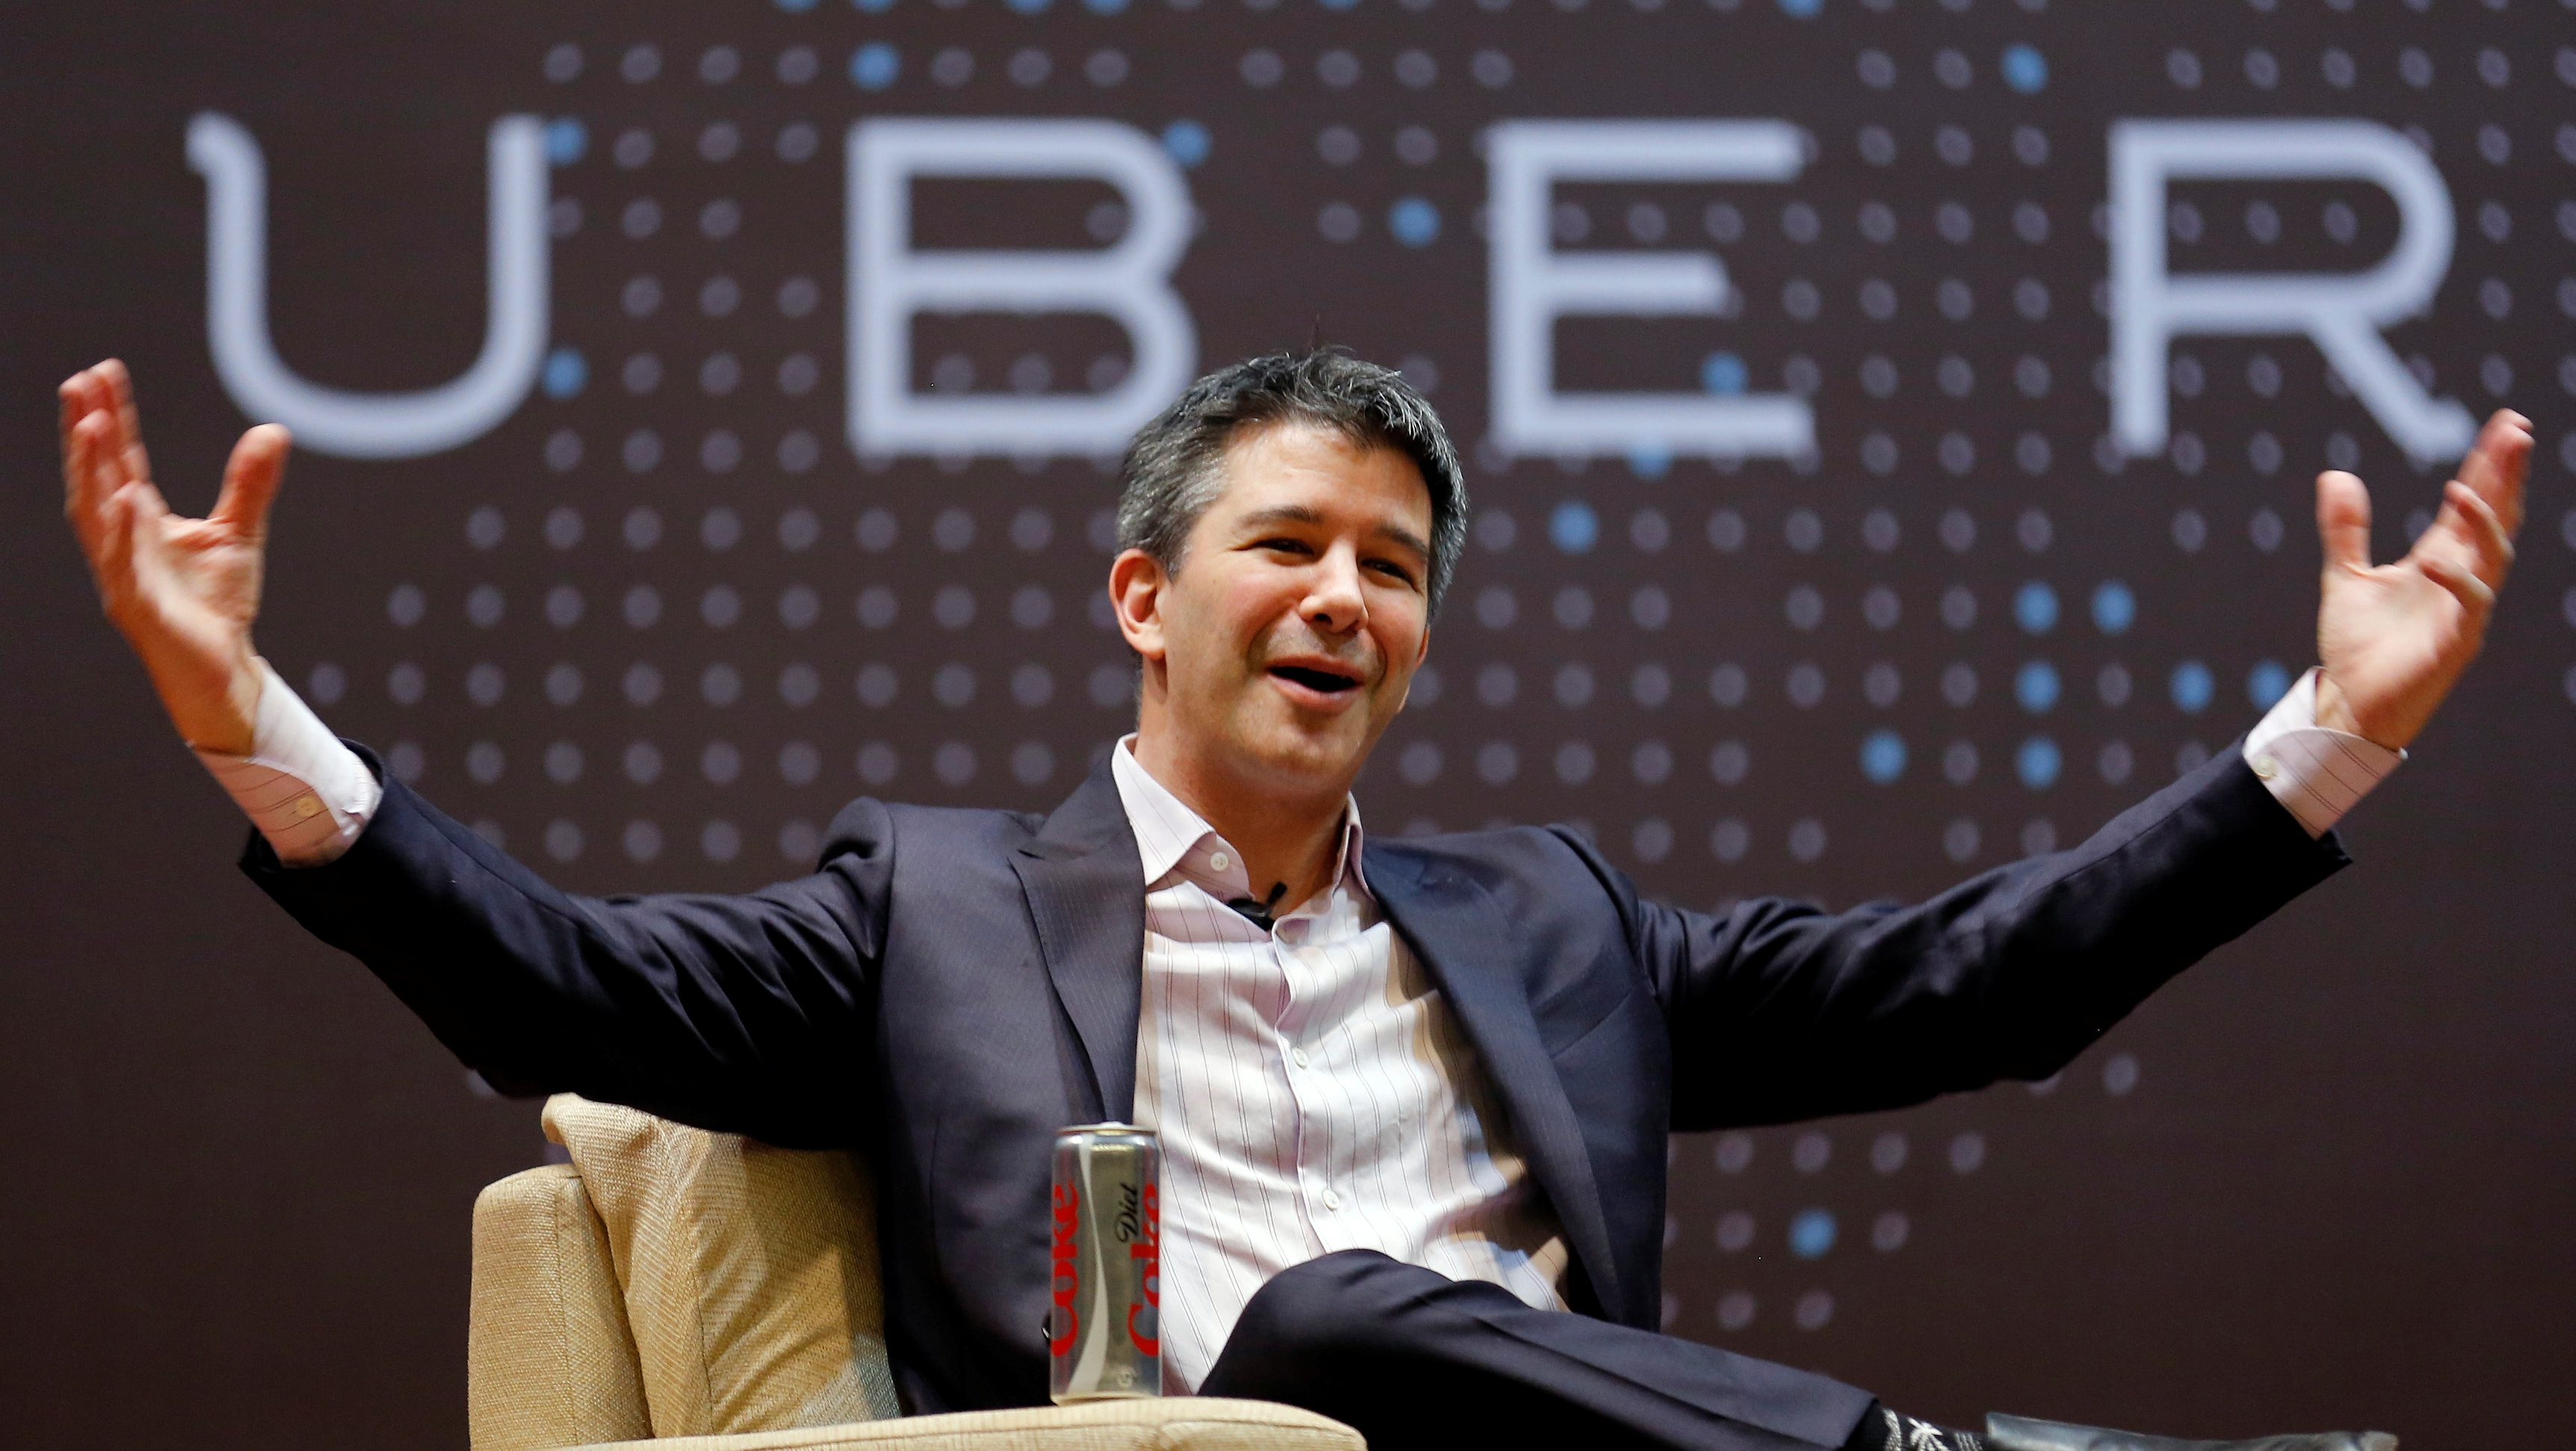 Uber CEO Travis Kalanick speaks to students during an interaction at the Indian Institute of Technology (IIT) campus in Mumbai, India, January 19, 2016.